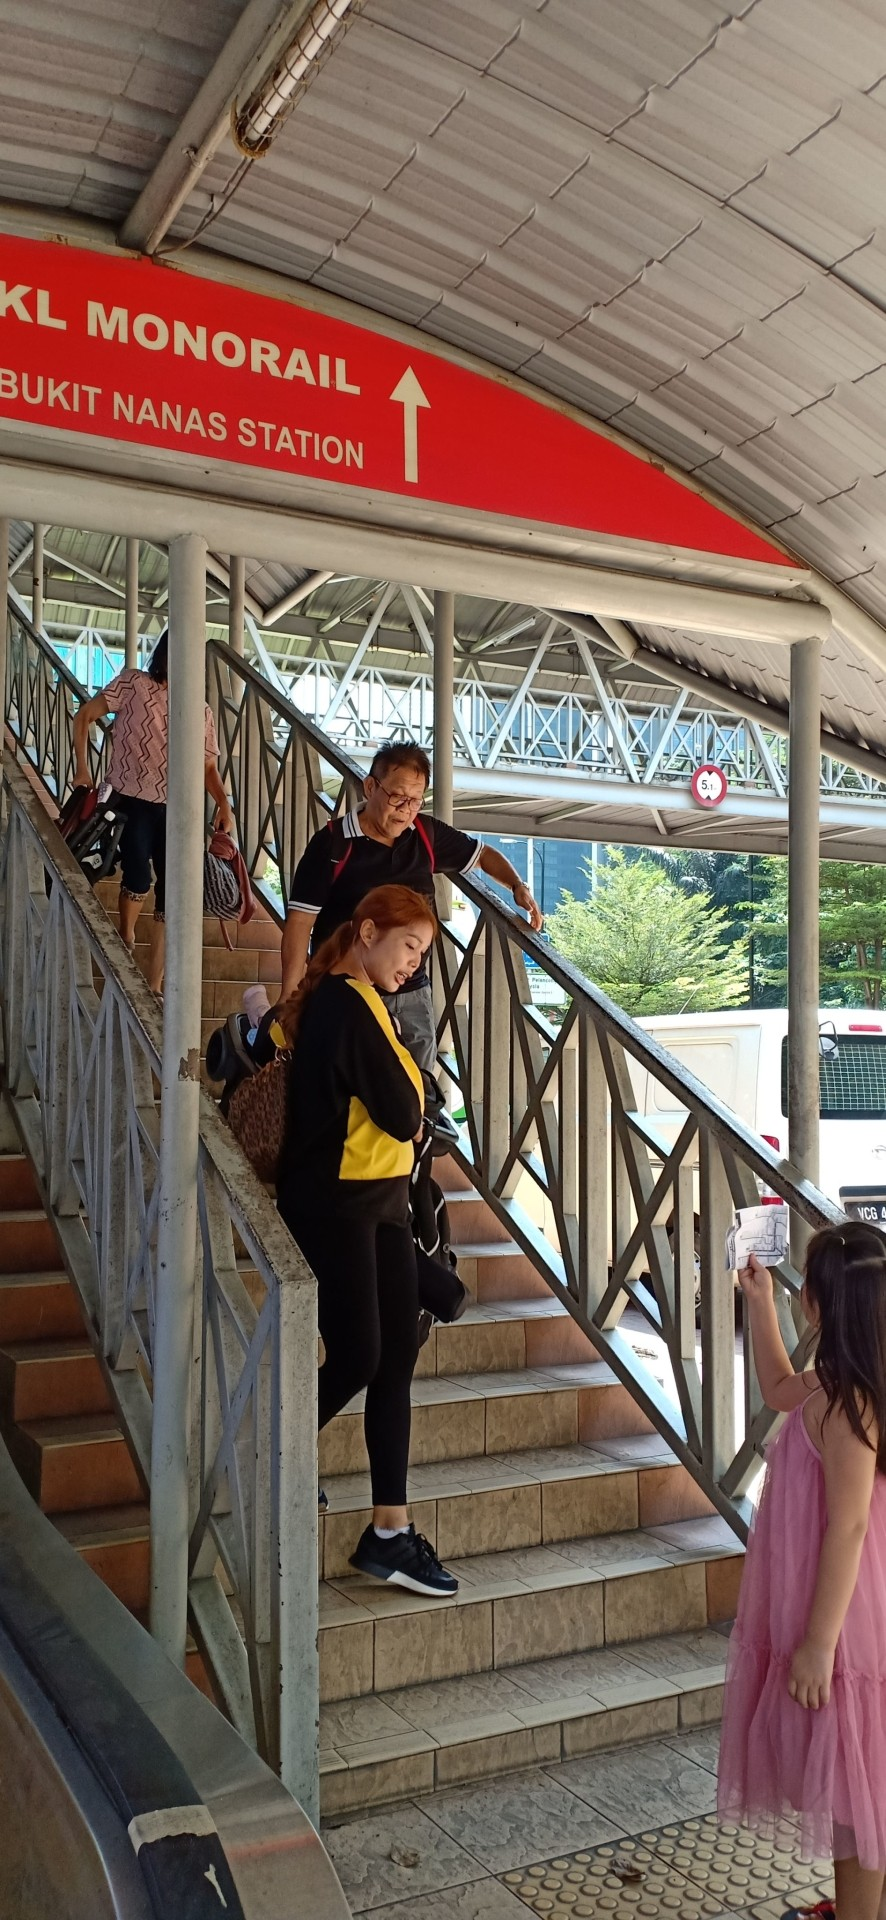 Some commuters lugging their luggage down the staircase of the pedestrian bridge because the escalators are out of order.